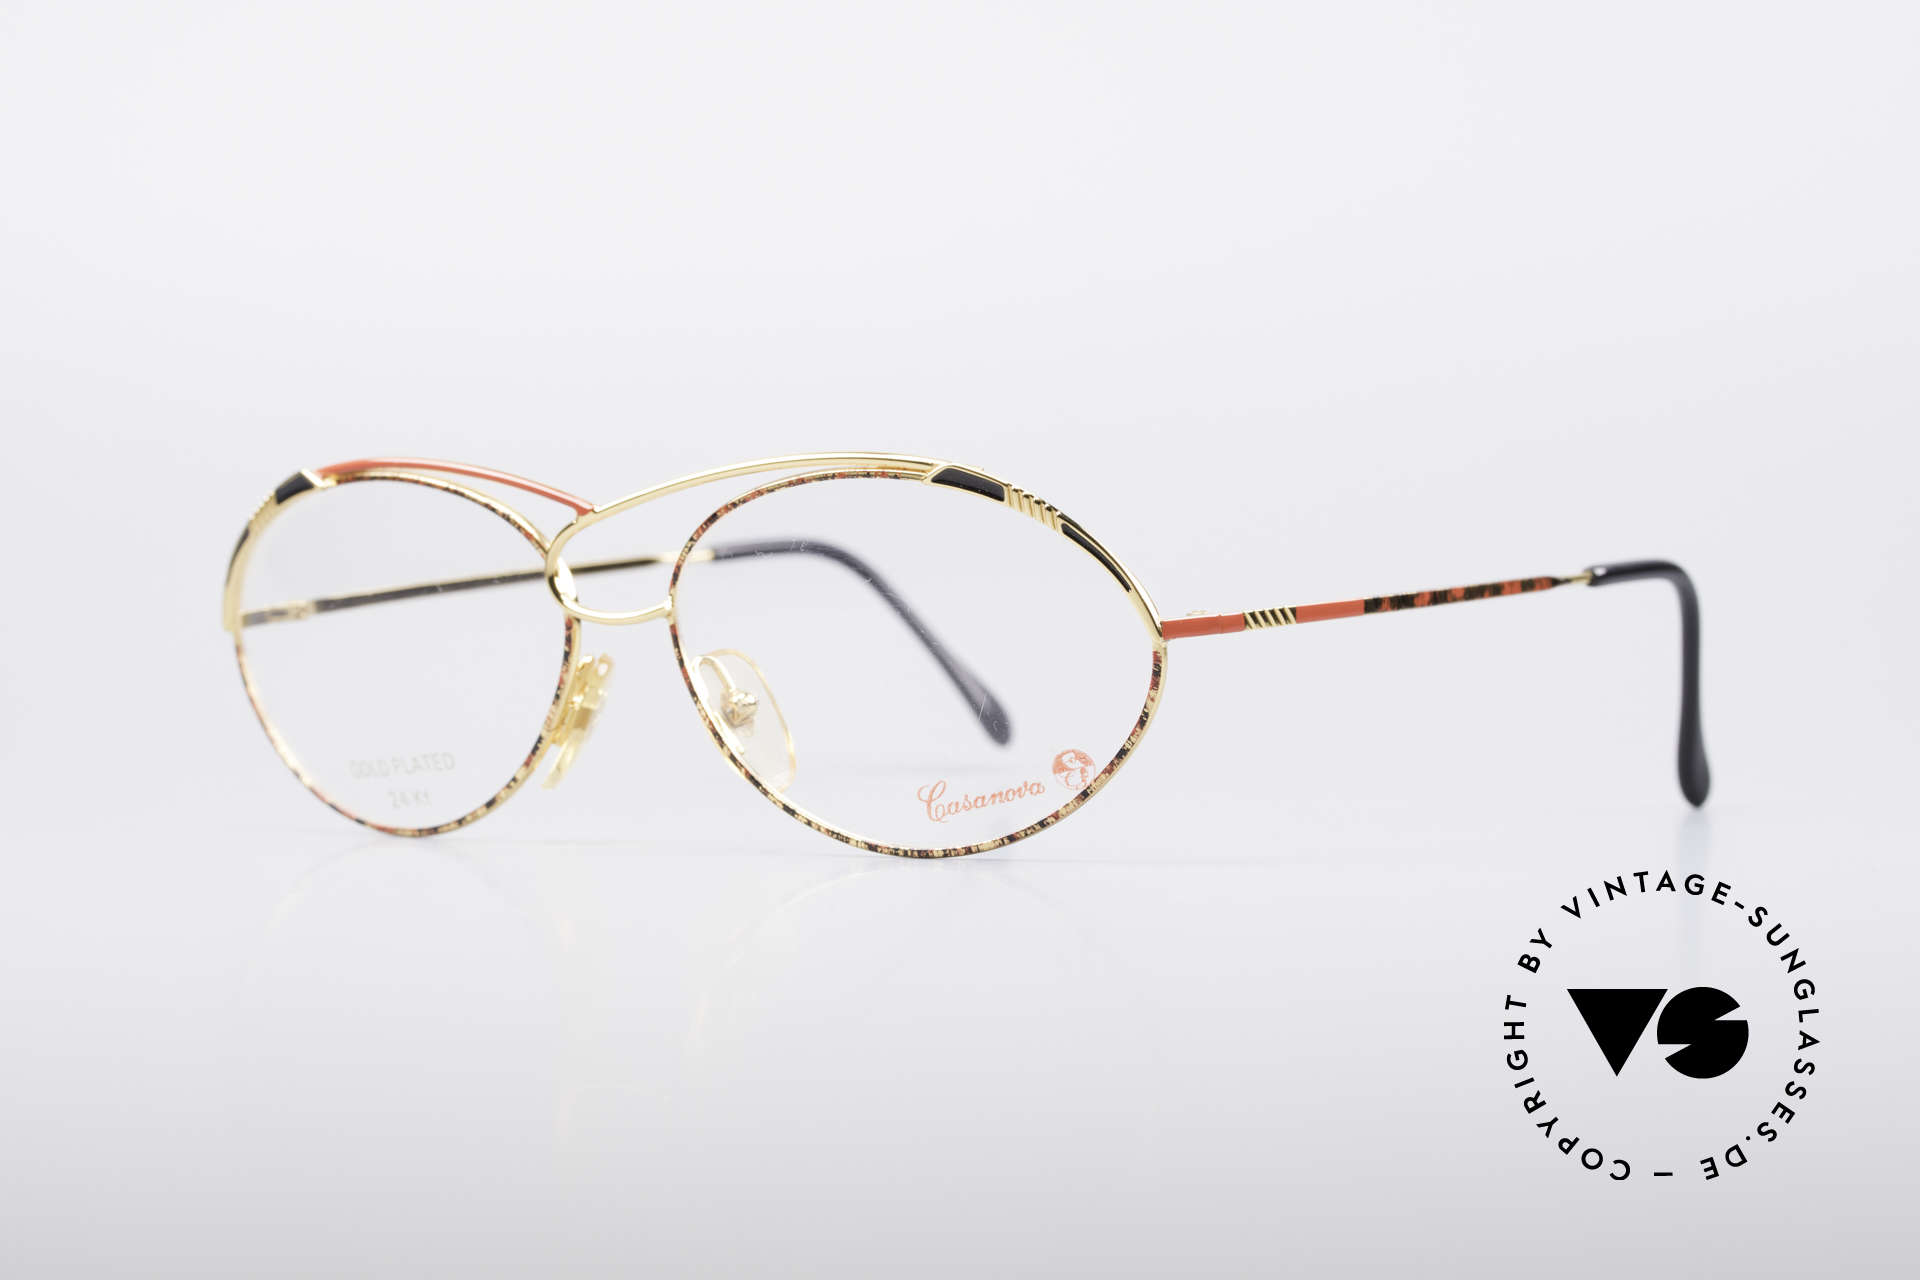 Casanova LC13 24kt Gold Plated Glasses, 24KT gold-plated frame (absolutely top-notch quality), Made for Women